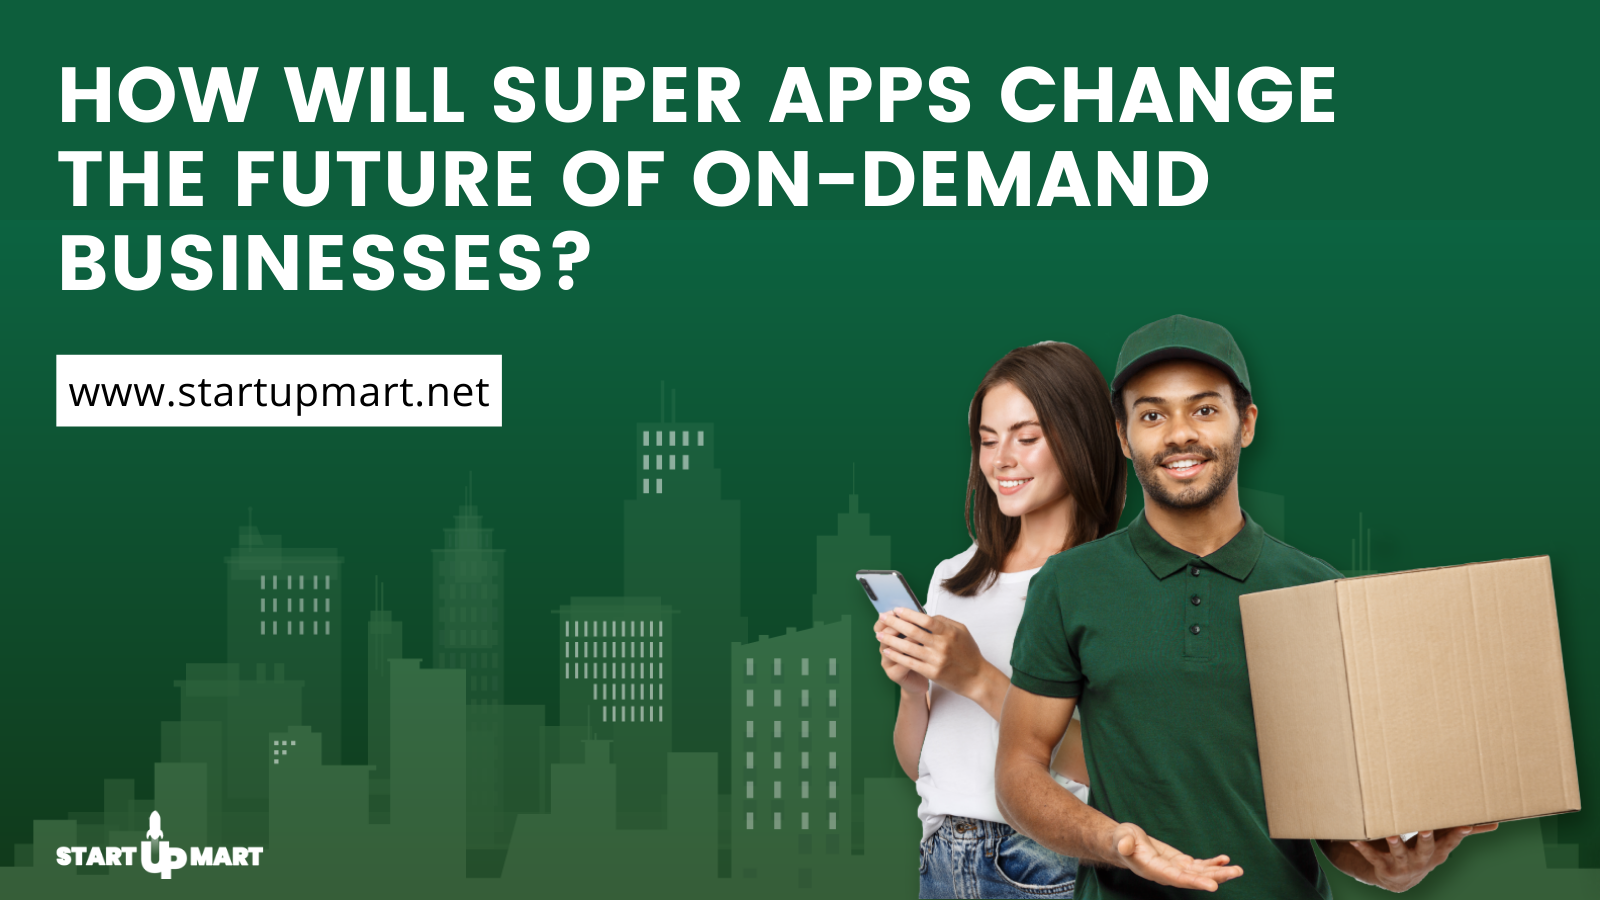 How Will Super Apps Change The Future Of On-Demand Businesses?